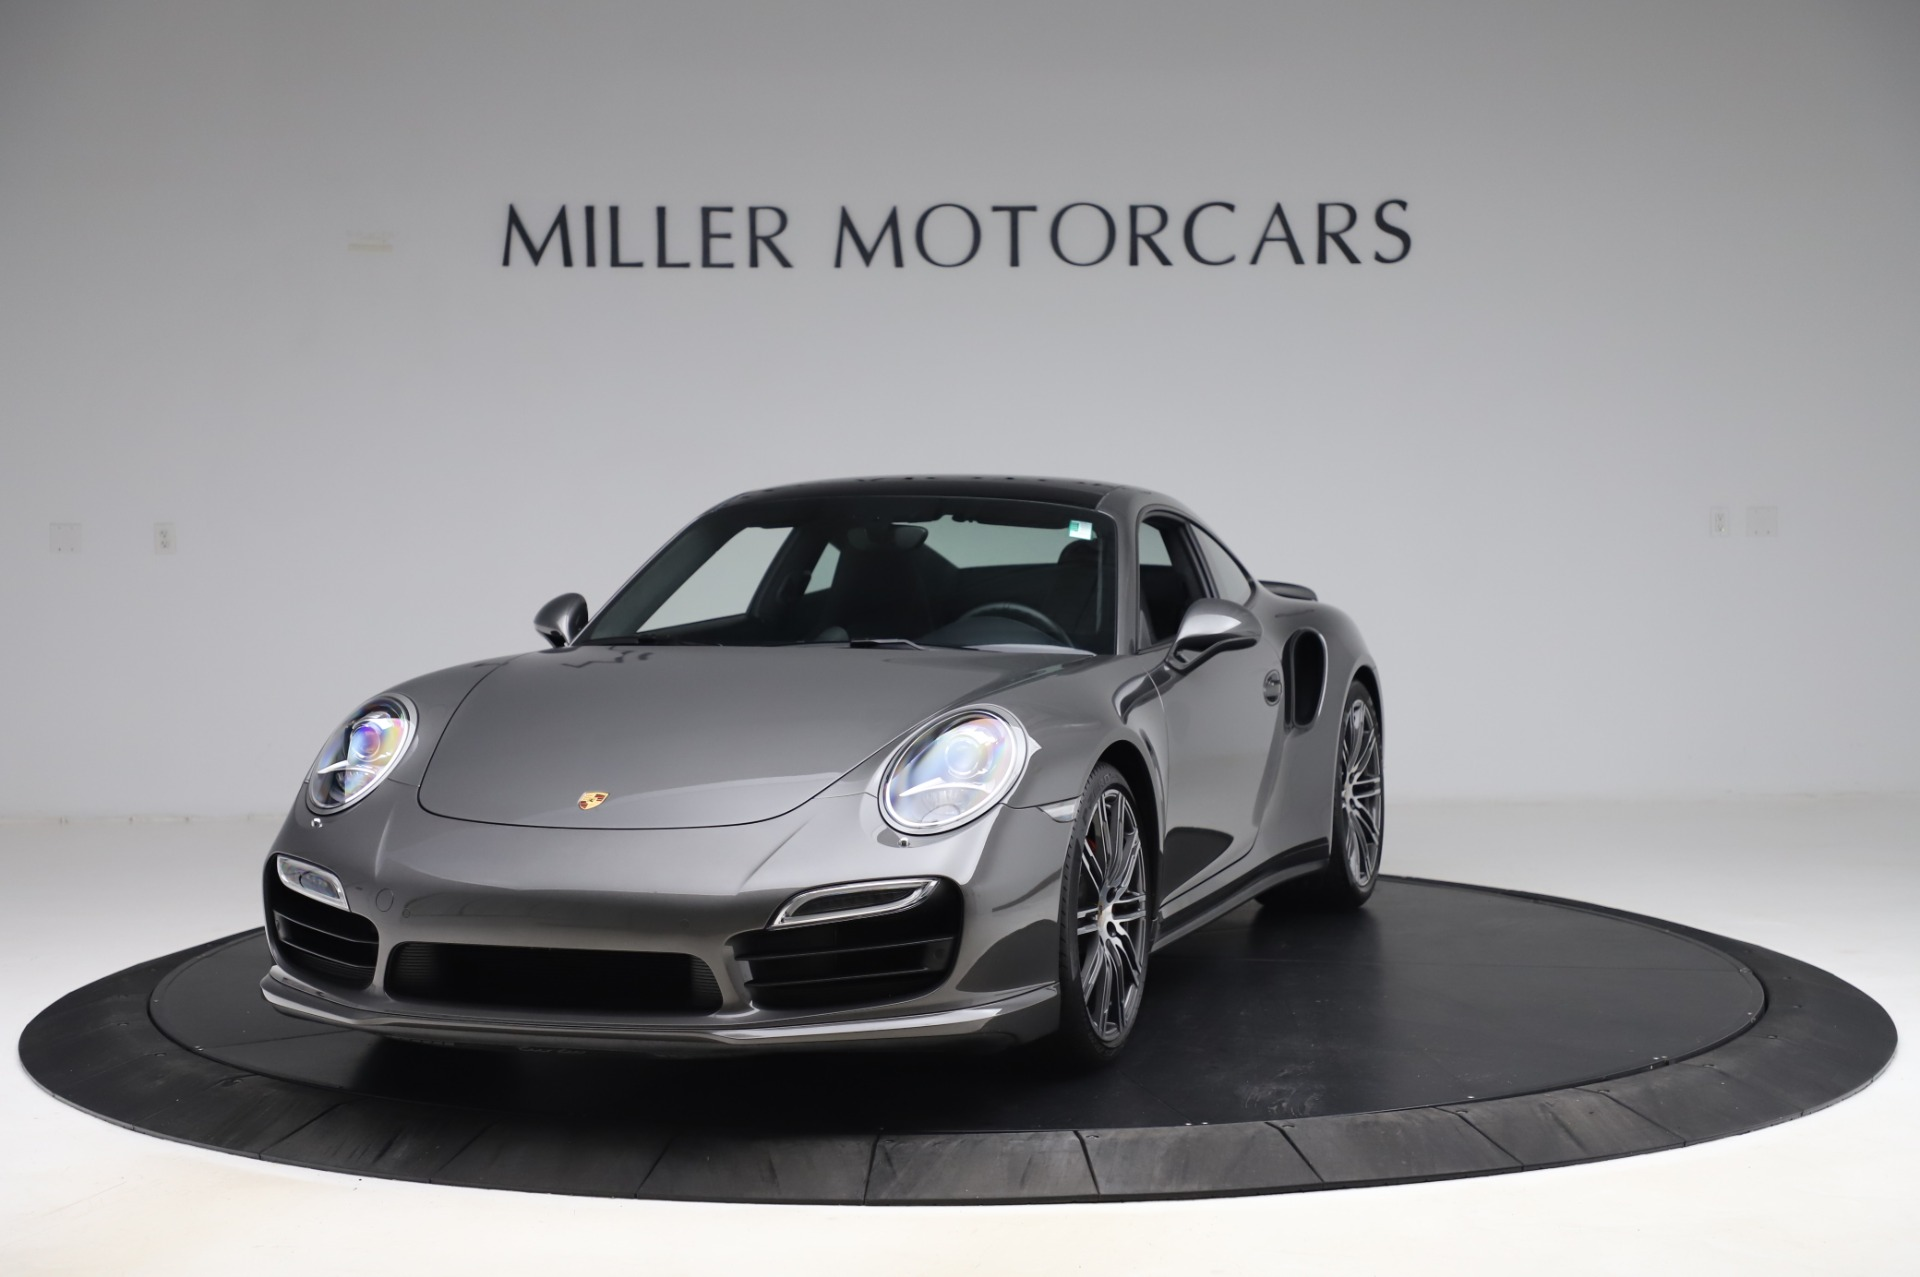 Used 2015 Porsche 911 Turbo for sale $123,900 at Bentley Greenwich in Greenwich CT 06830 1